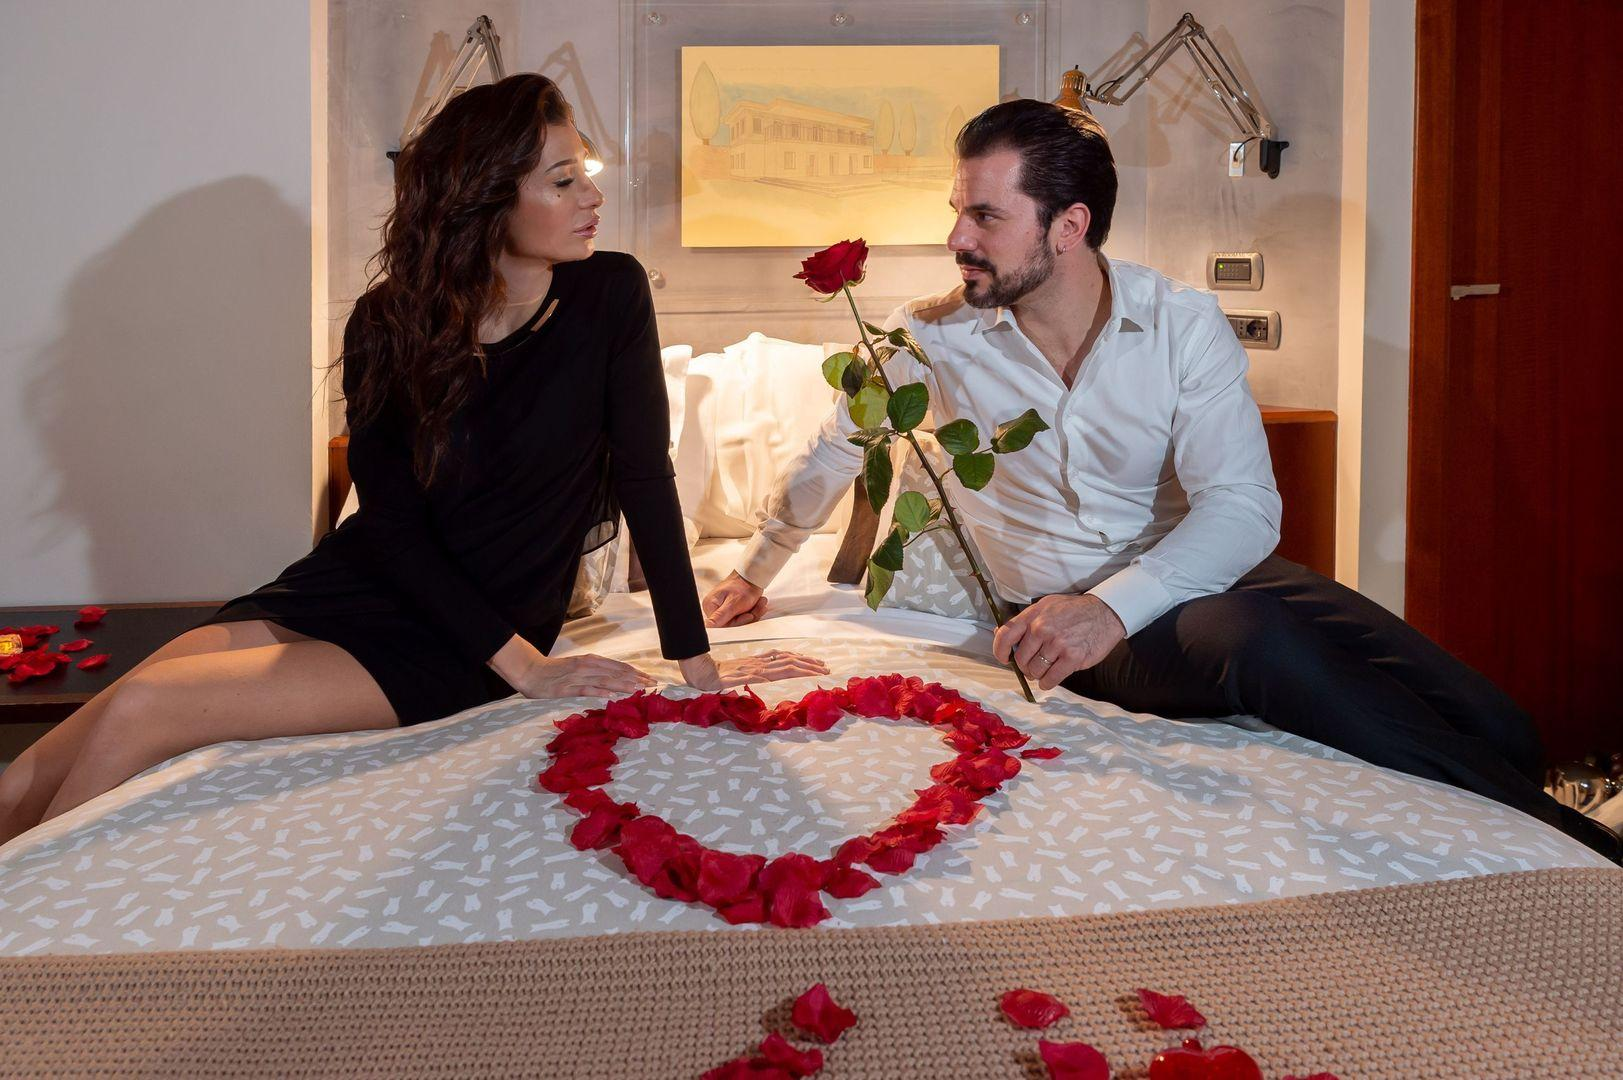 Boutique-hotel-ca-pisani-camera-romantic-experience-gallery-1